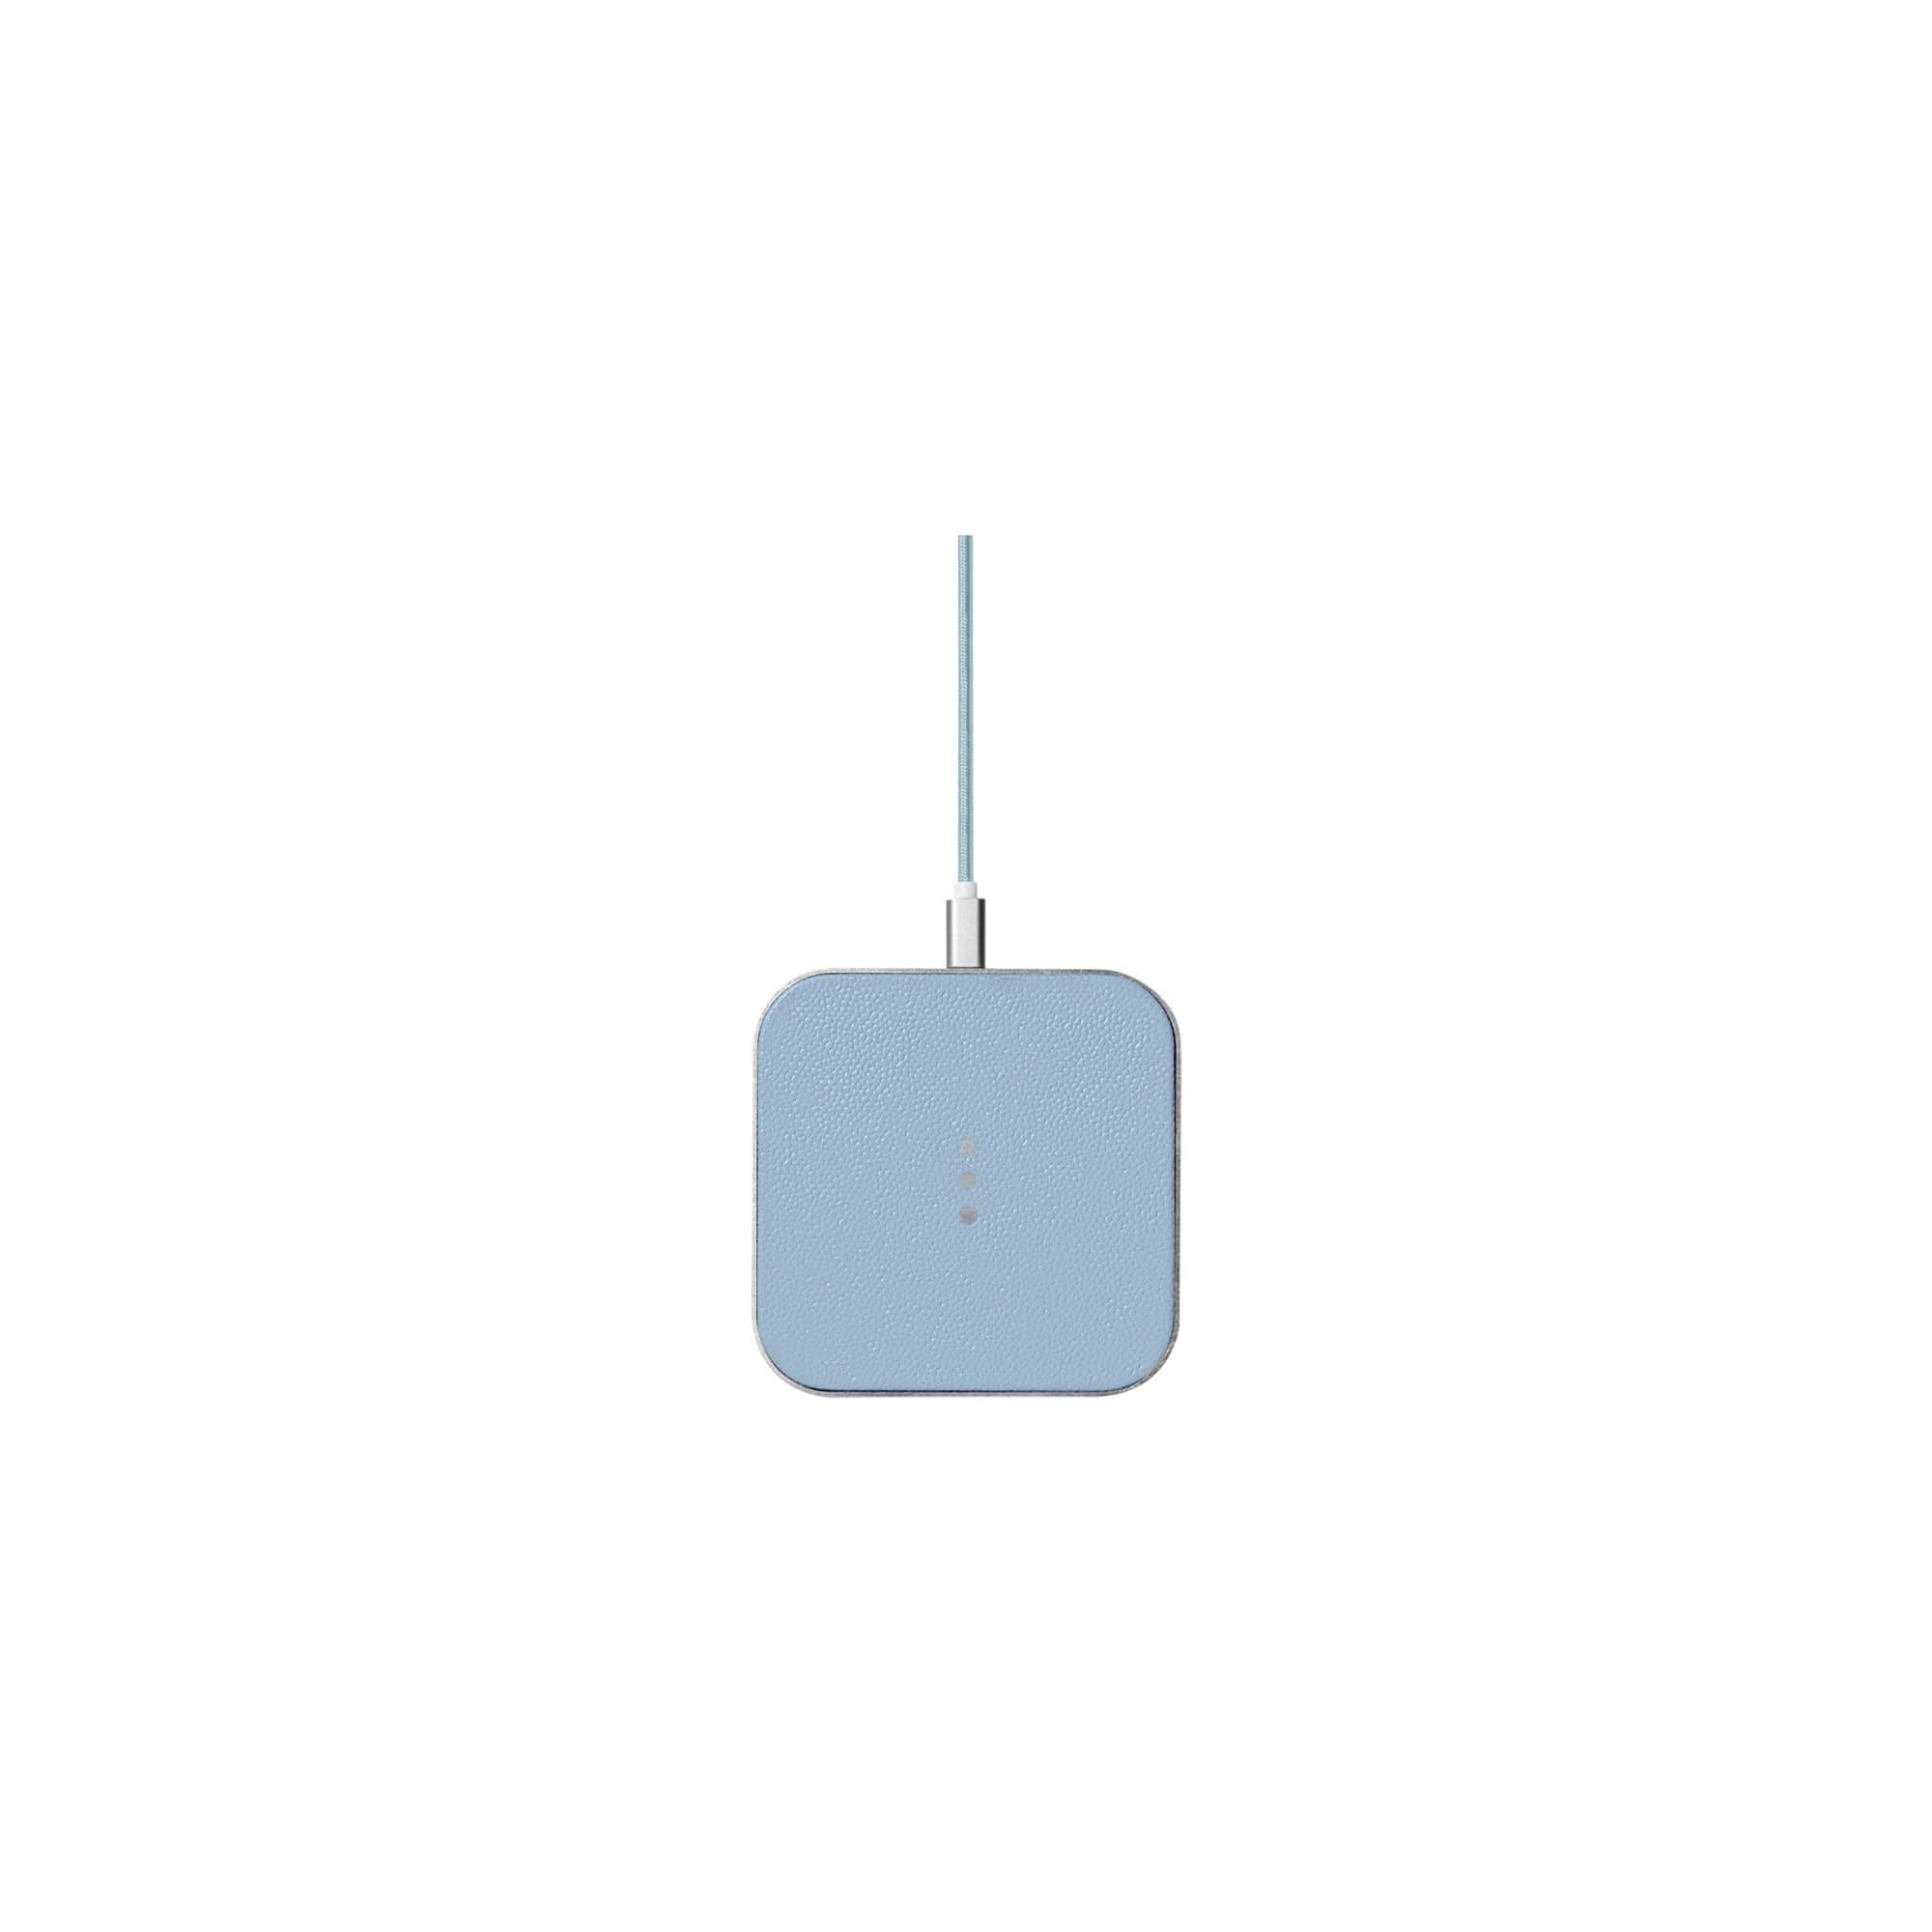 CATCH:1 Wireless Charger in Pacific Blue